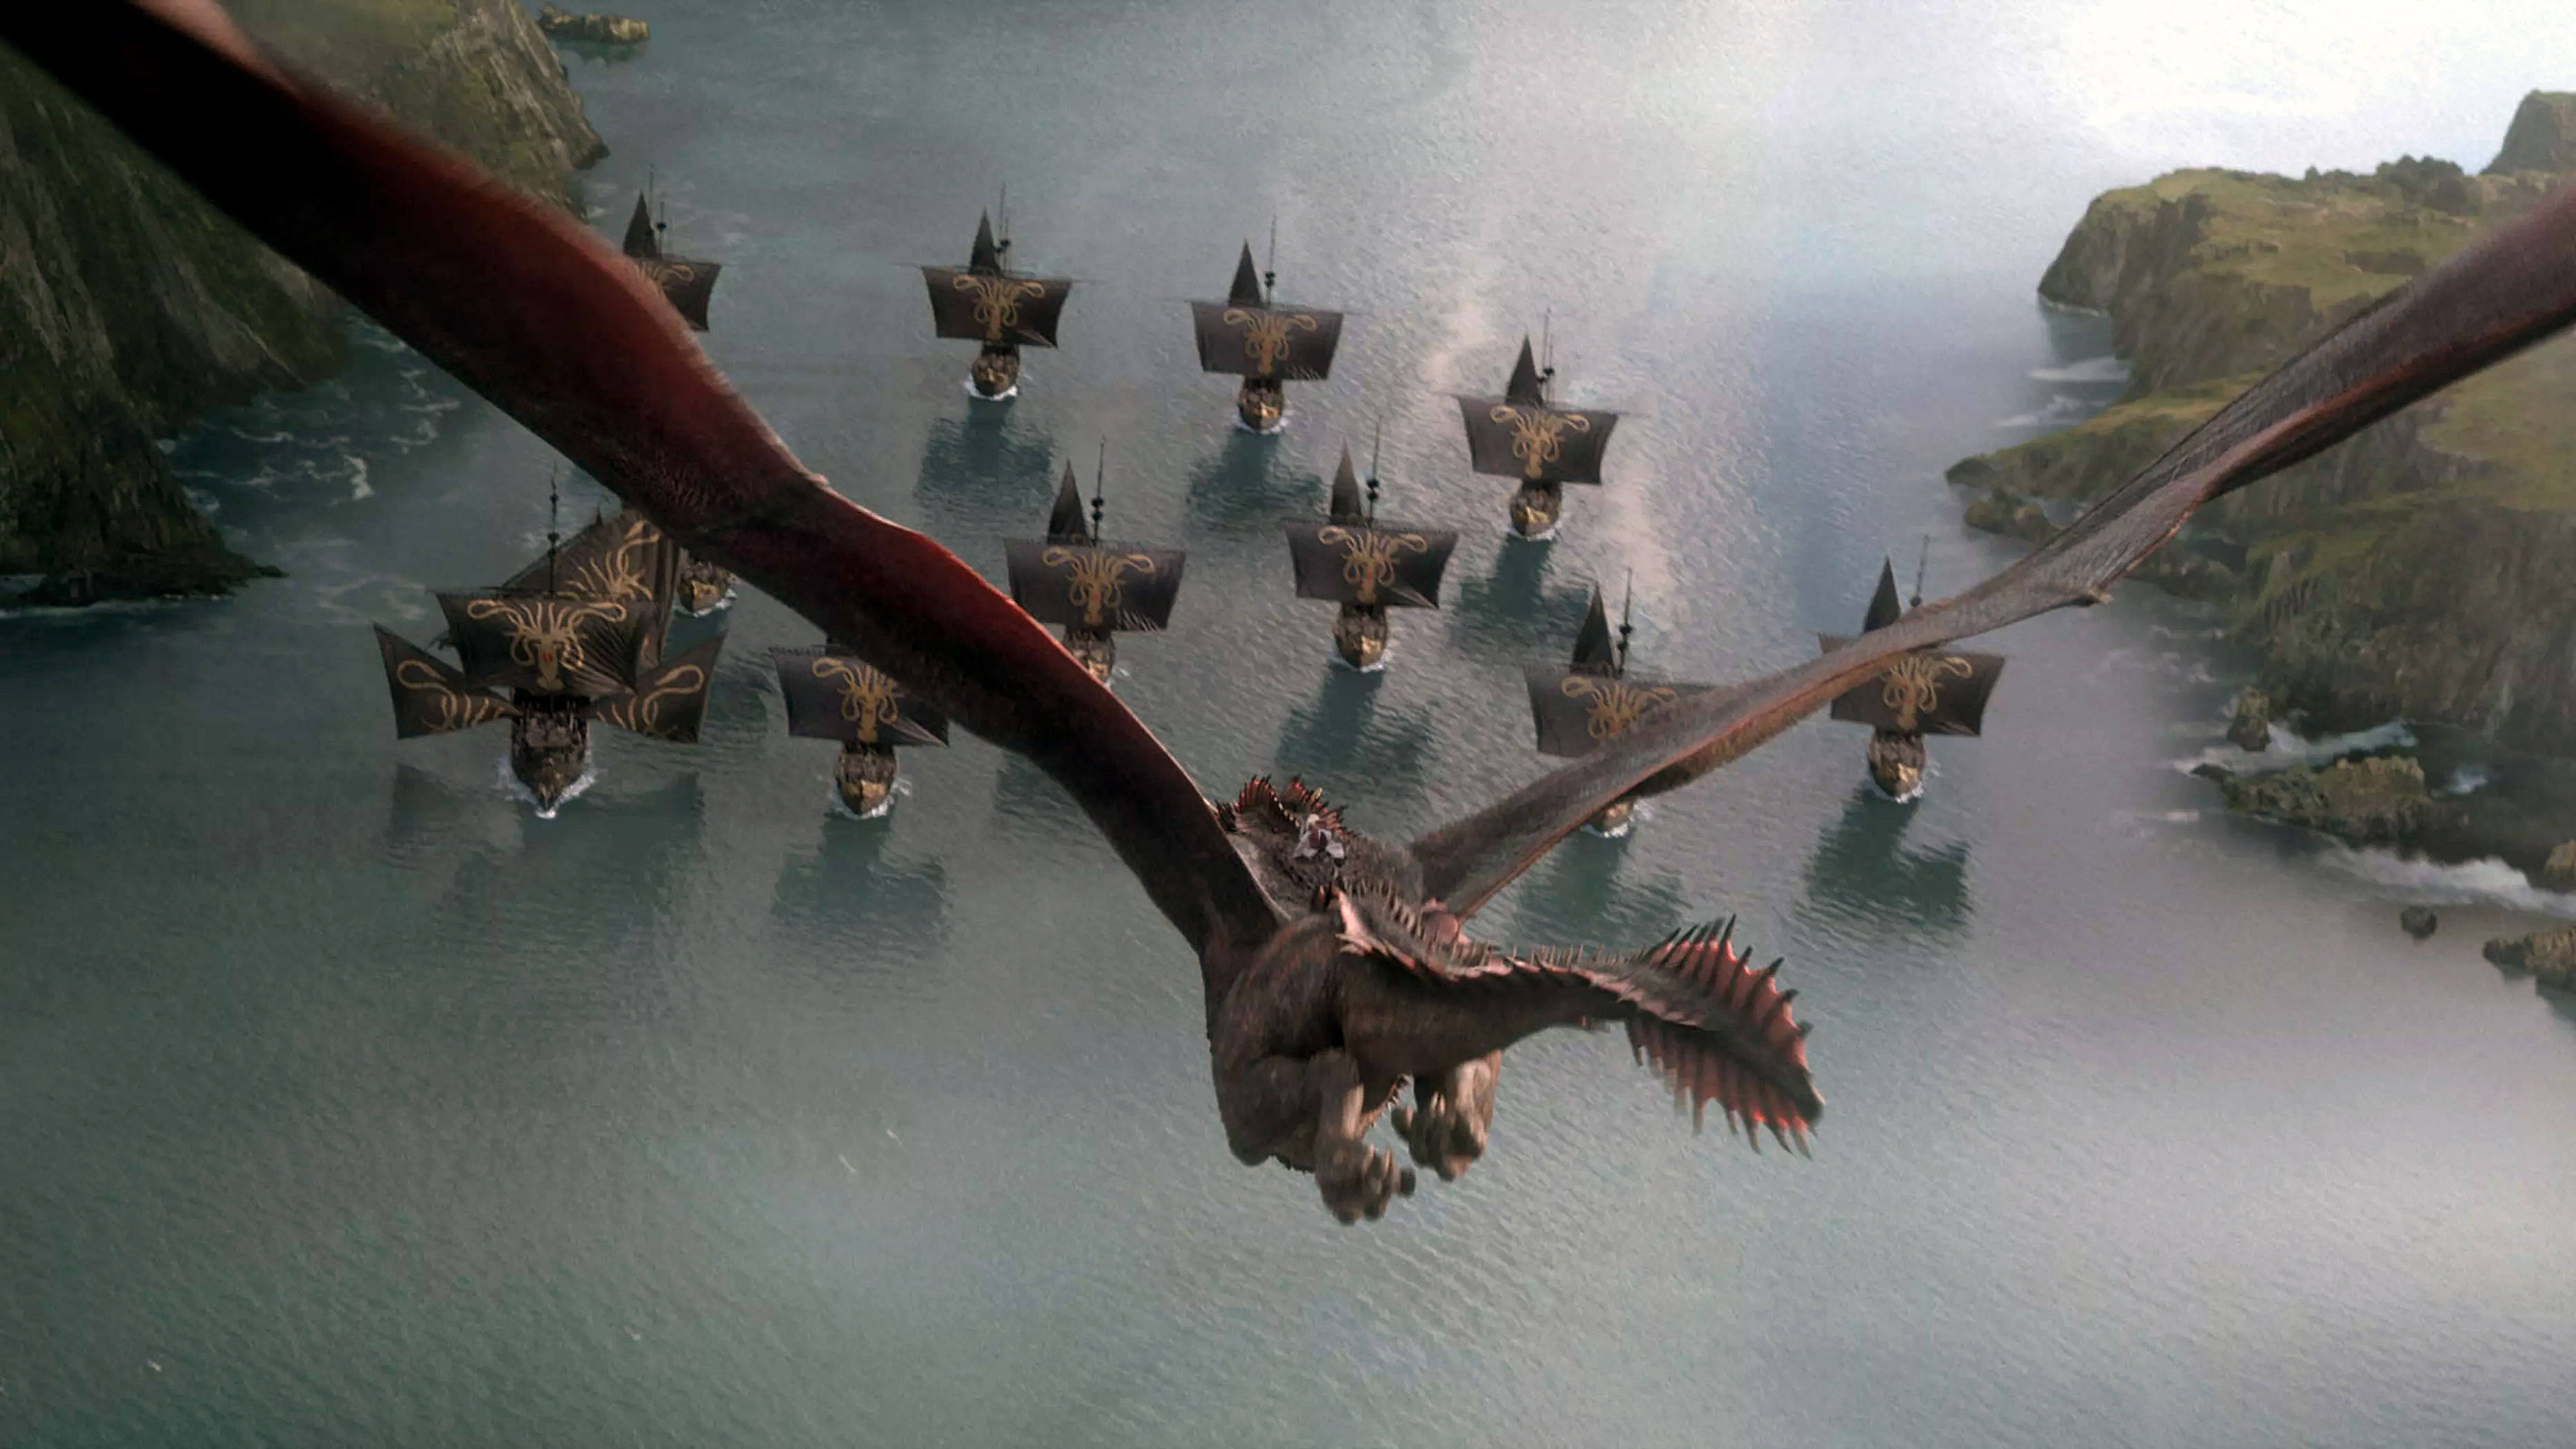 8x04 - The Last of the Starks - Drogon vs. Euron